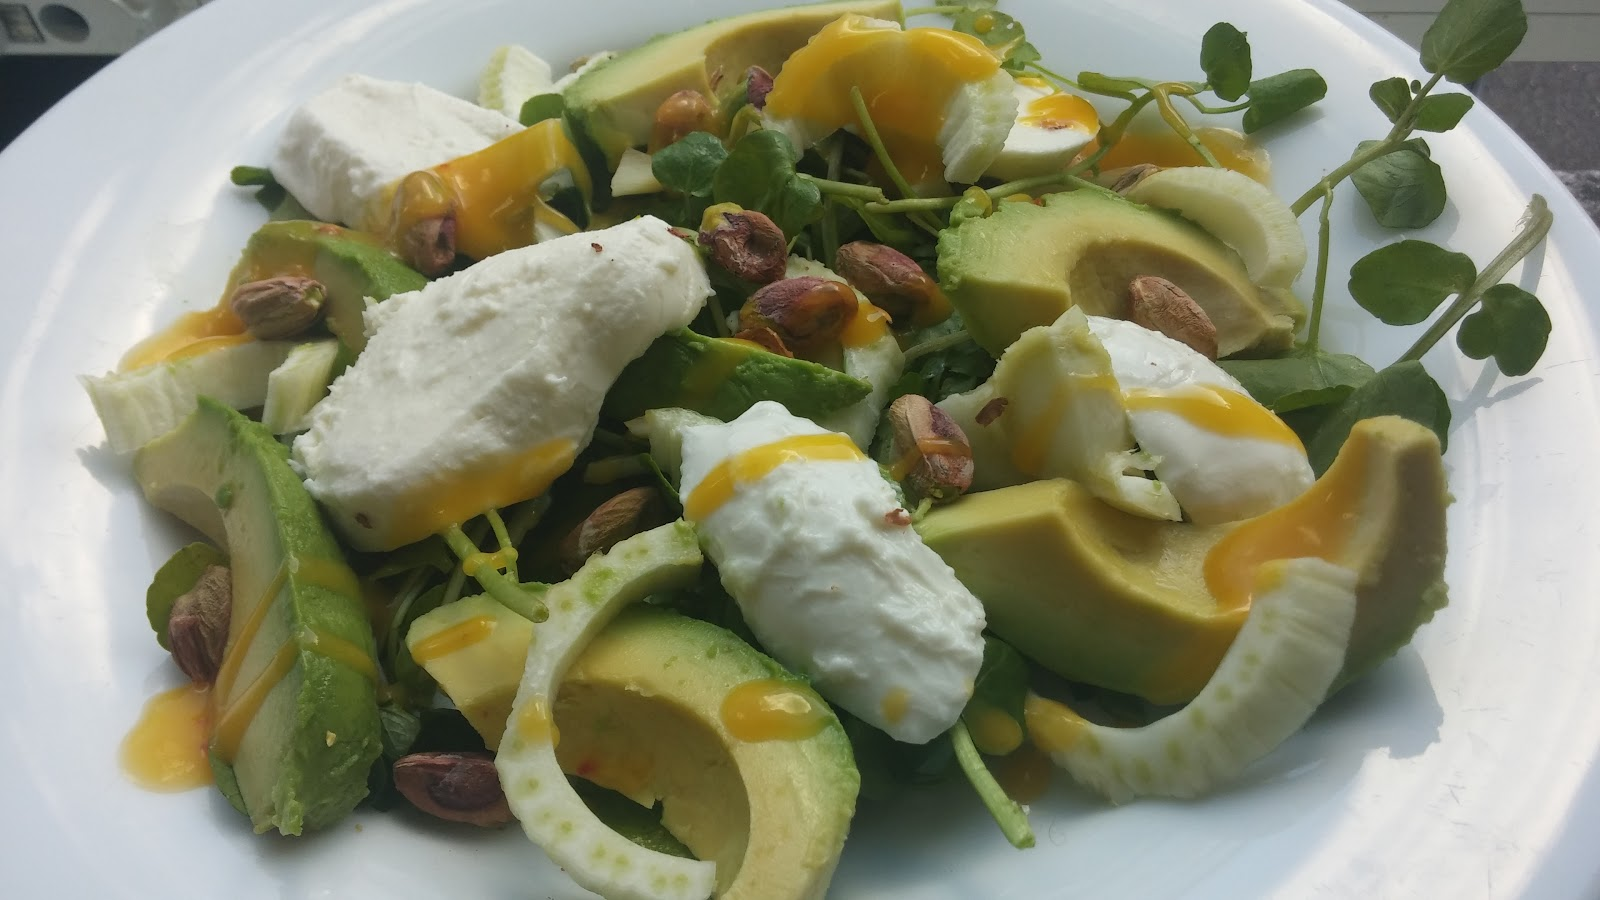 Fennel, mozzarella & avocado salad with chilli mango dressing and pistachio nuts.